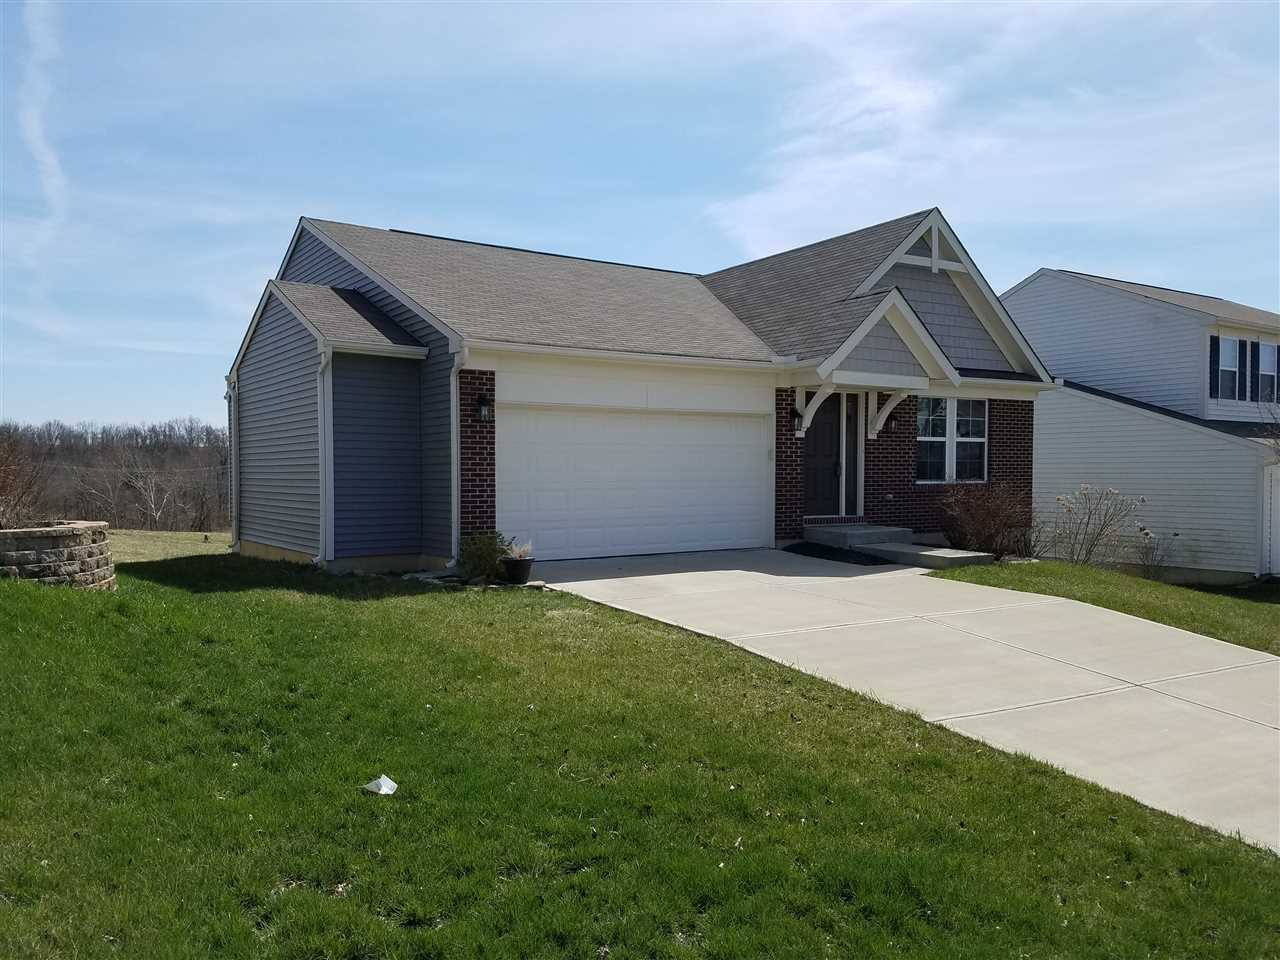 Photo 2 for 10725 Anna Ln Independence, KY 41051